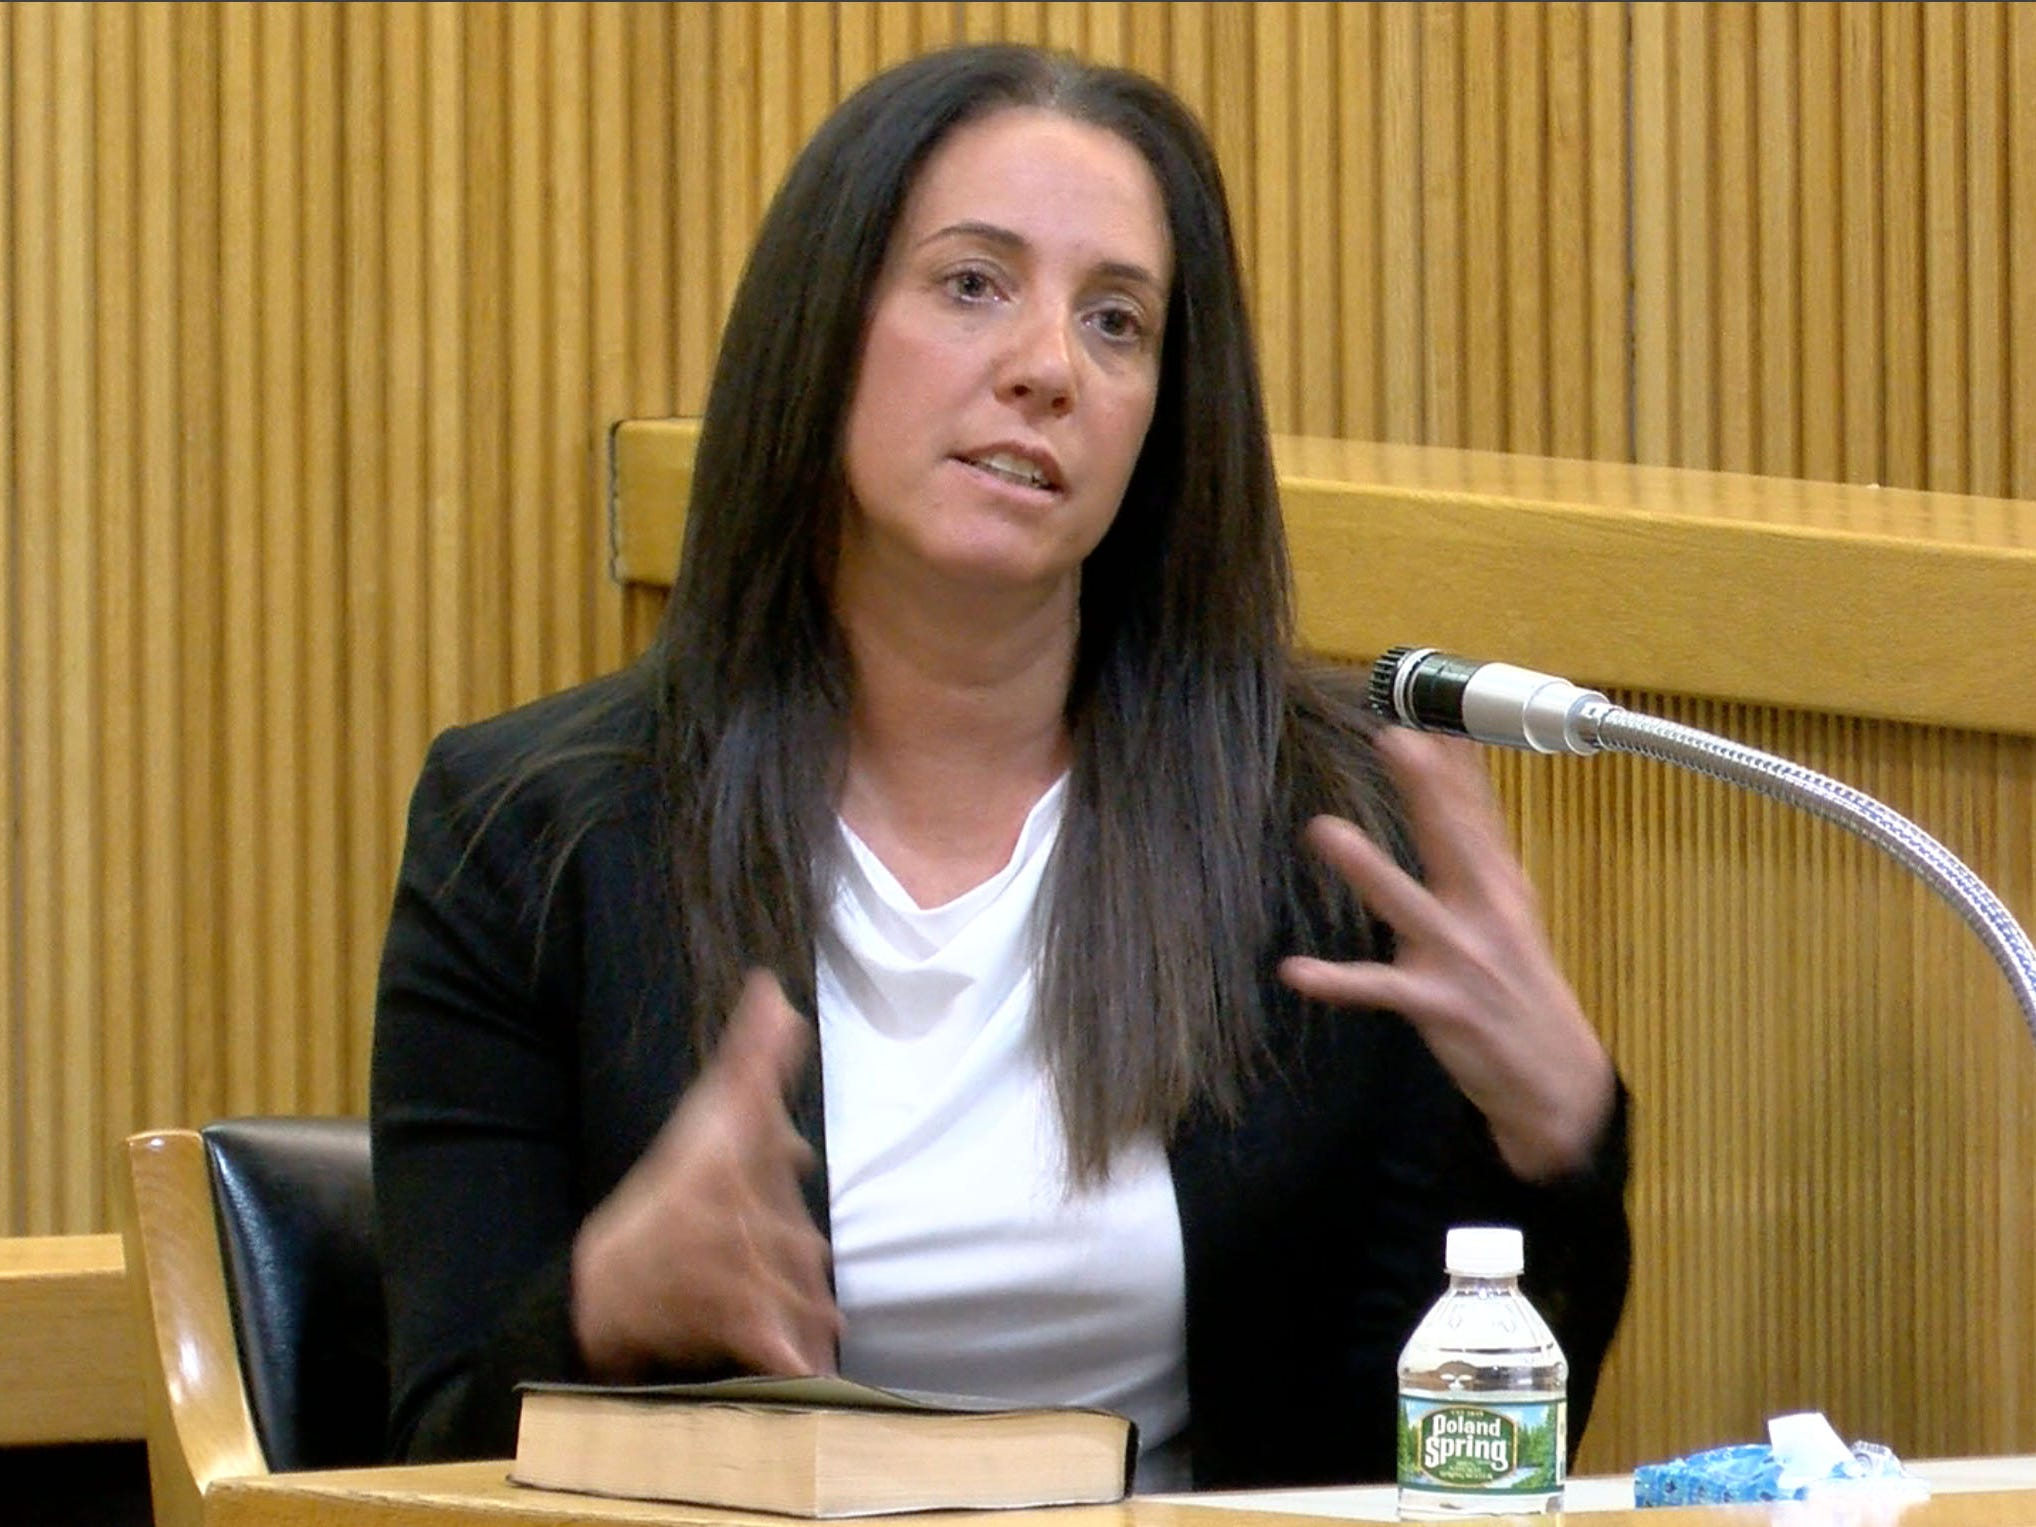 Esther D'Amico, manager of Bruno's Pizzeria, speaks about her former employee Sarah Stern in State Superior Court in Freehold Tuesday, February 5, 2019.  Liam McAtasney is on trial for the murder of Sarah Stern.